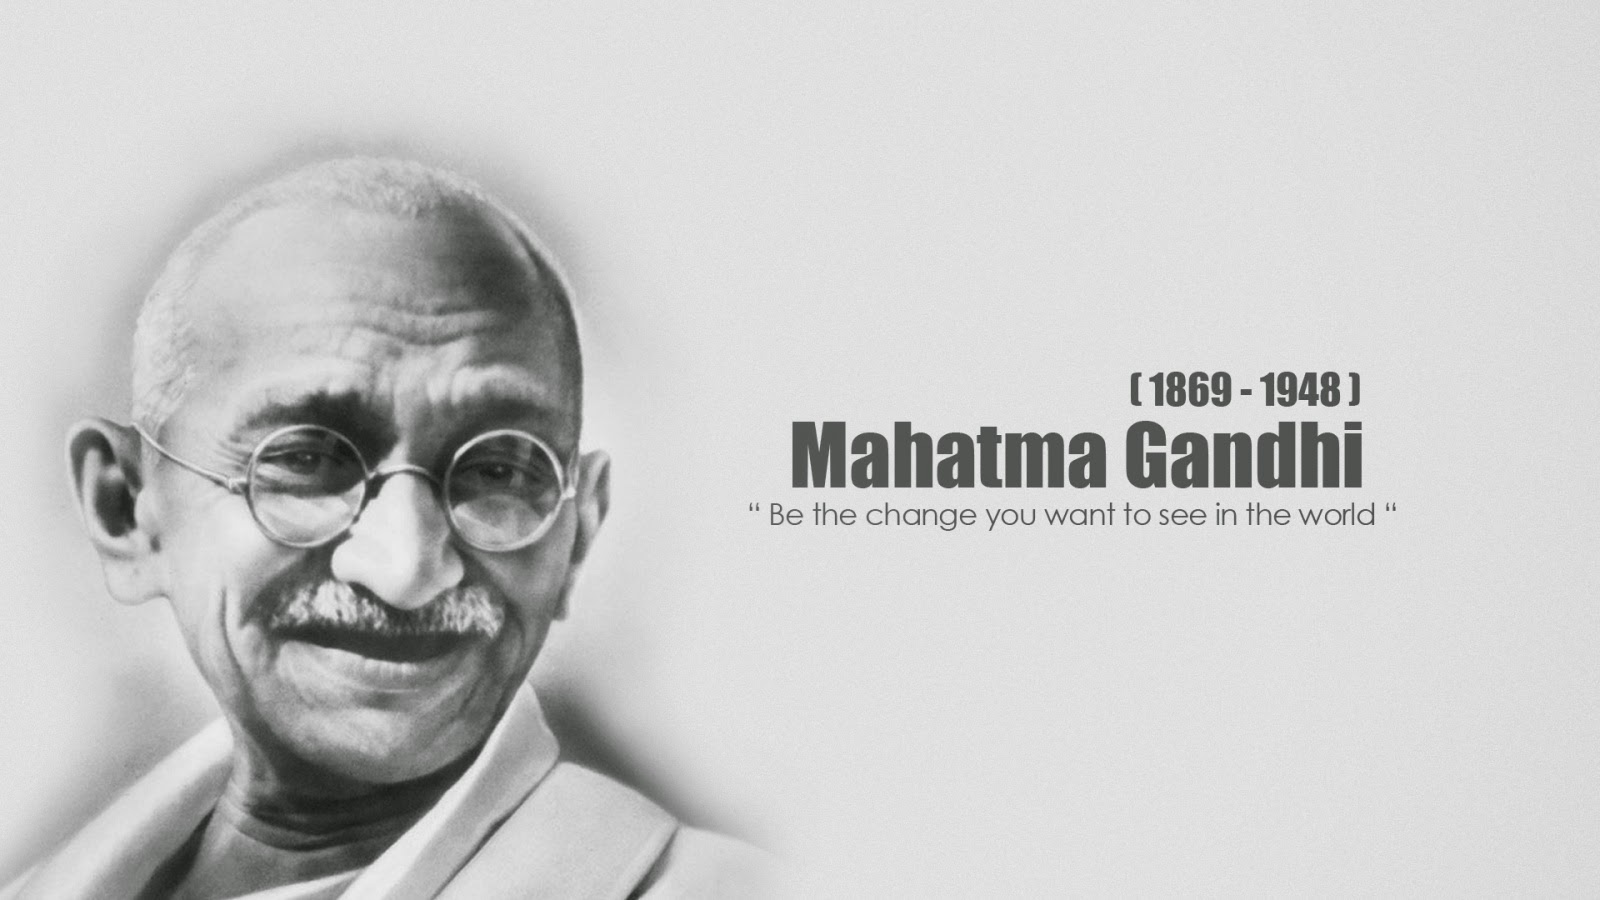 PM Modi pays tributes to Father of the Nation Mahatma Gandhi